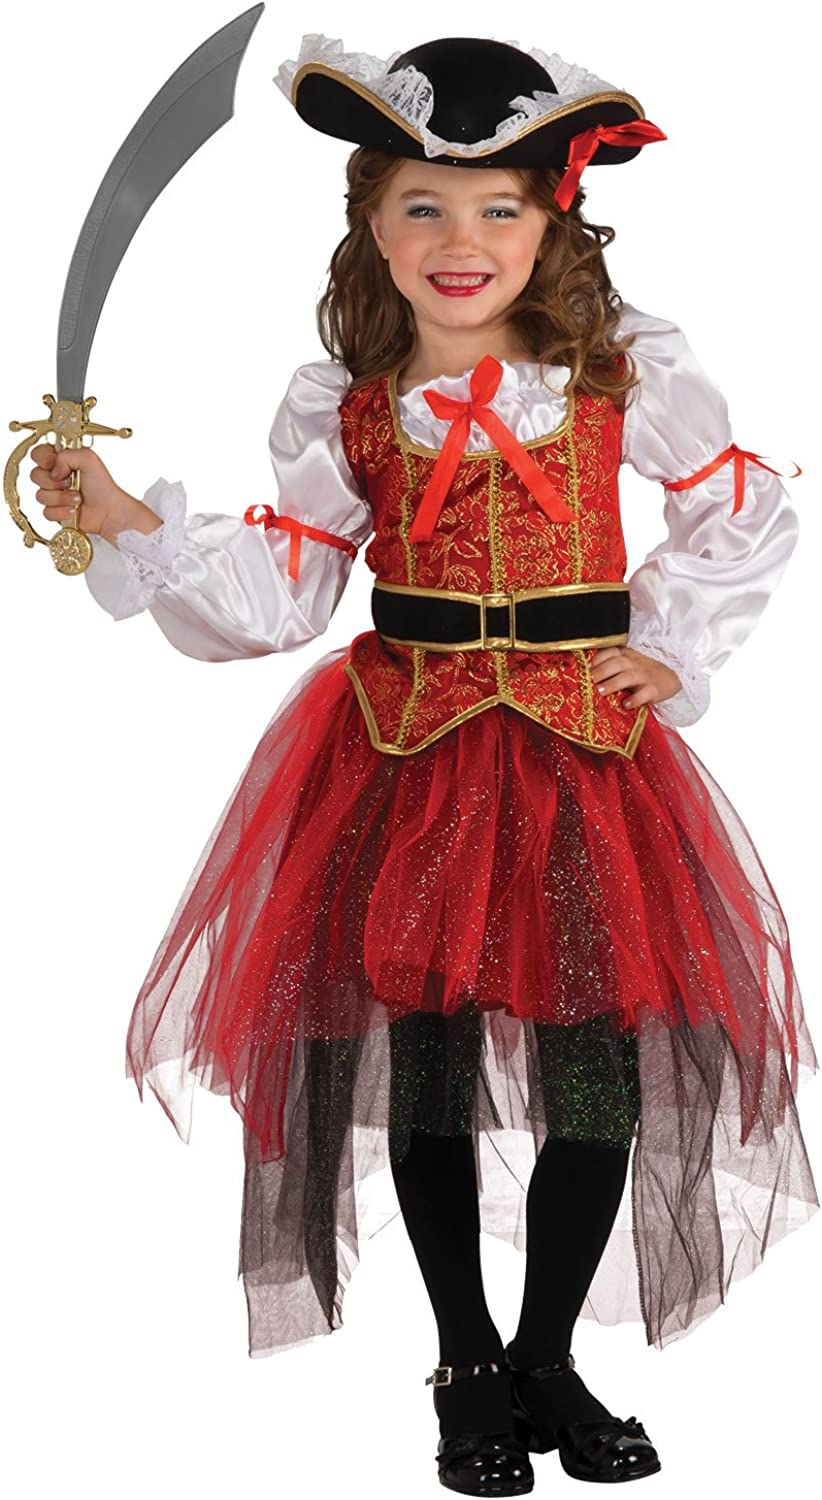 Rubie's Let's Pretend Princess Product Costume The Seas Cheap mail order specialty store Of